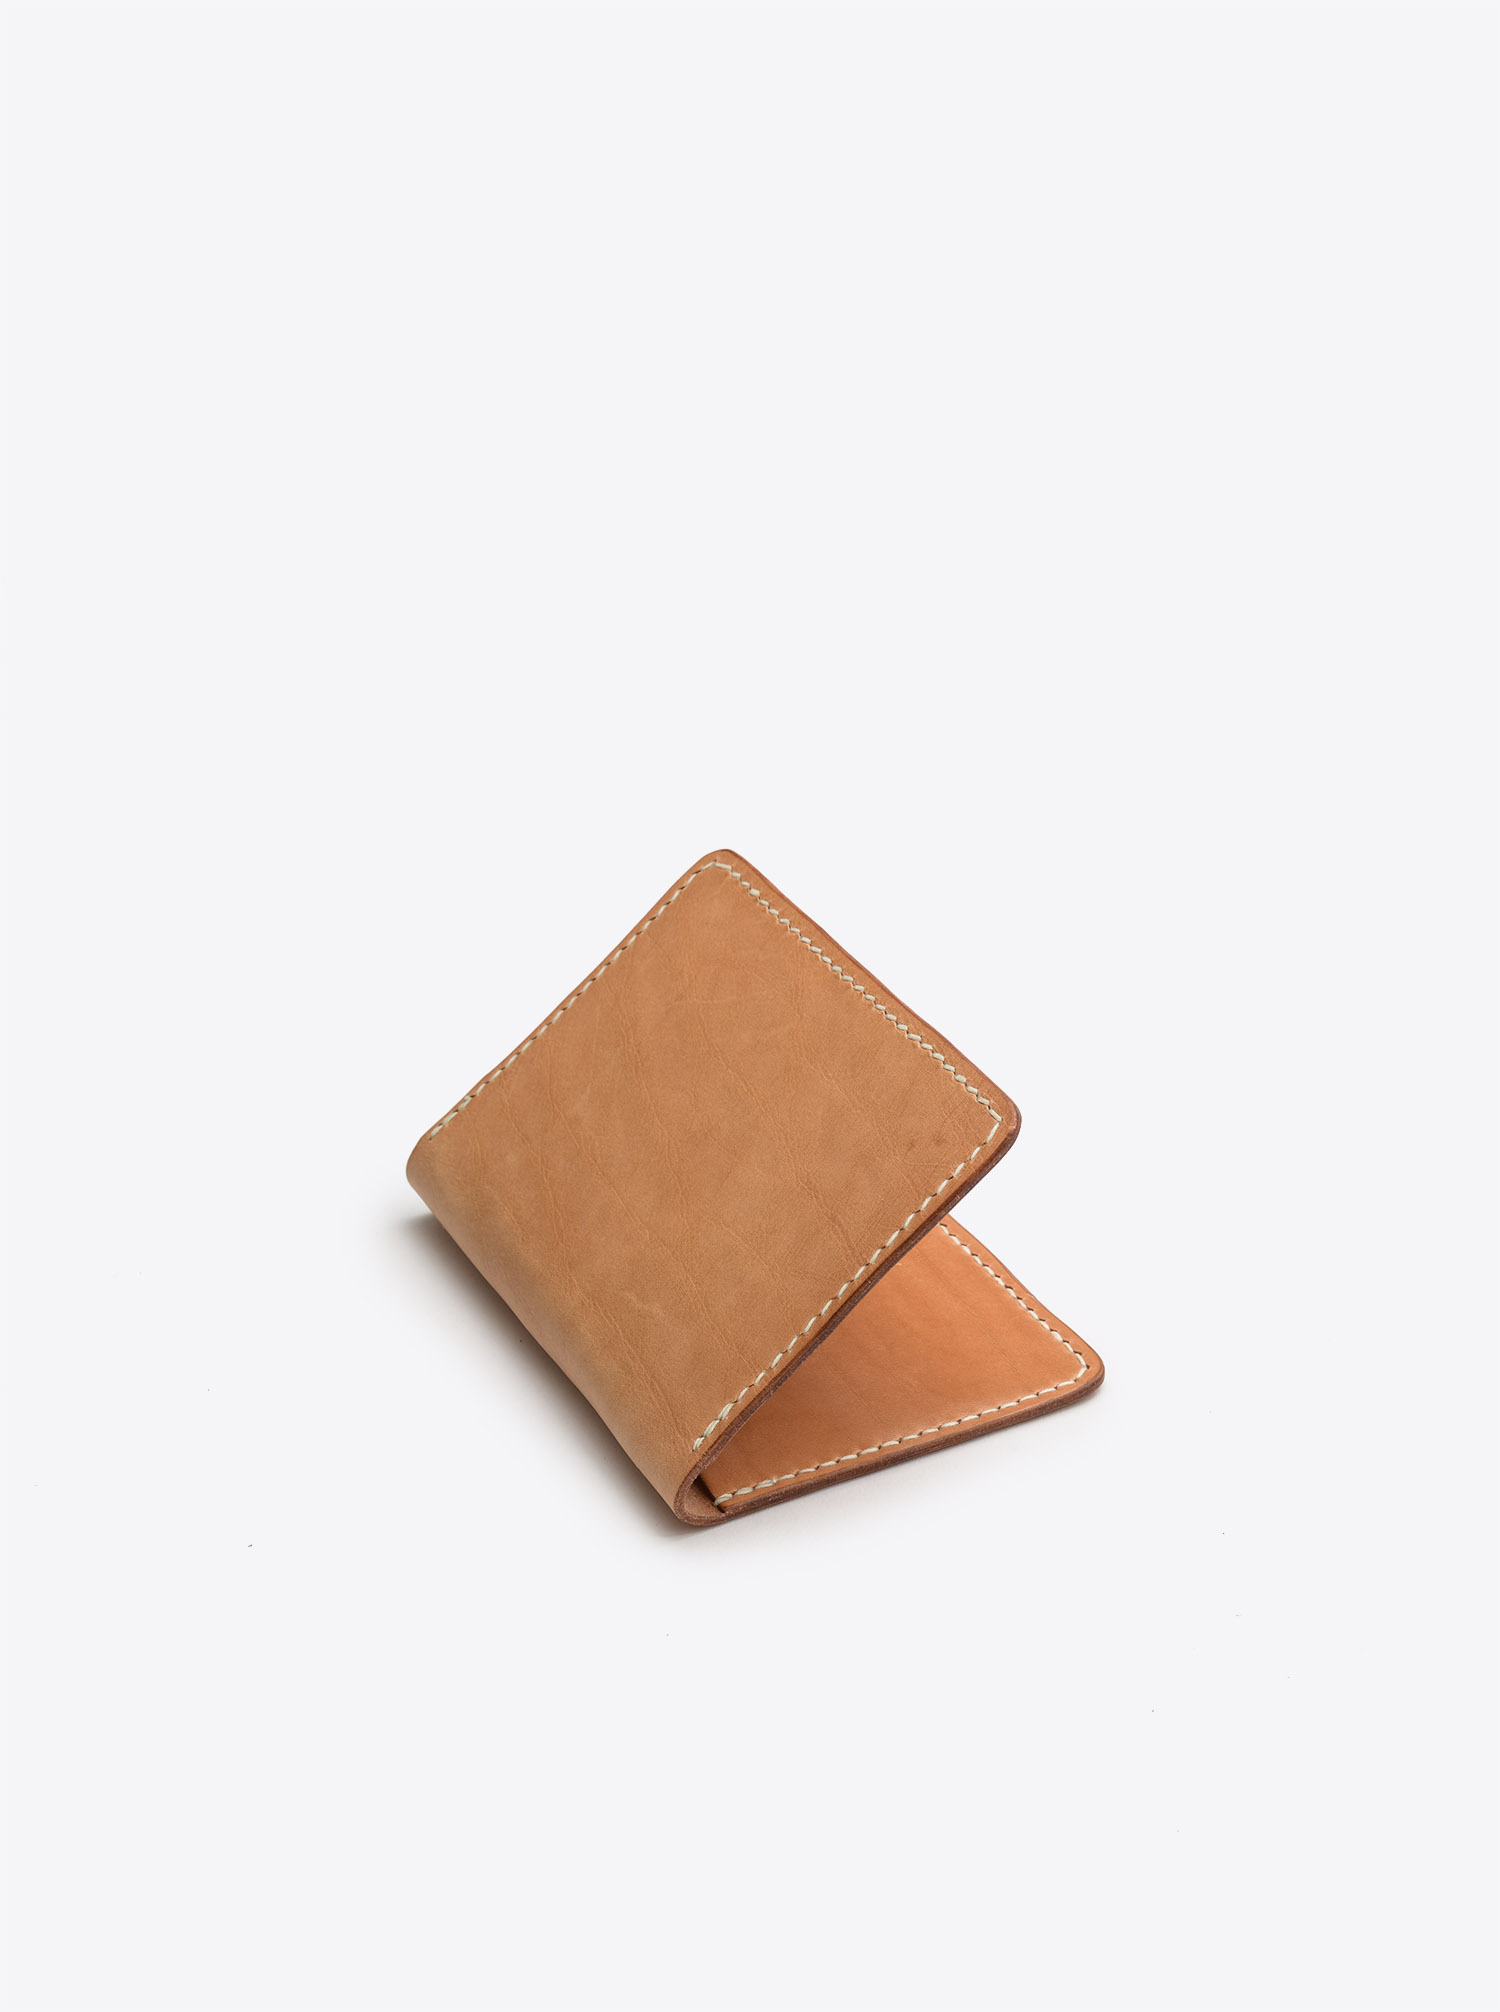 Passport Holder Cowhide Leather